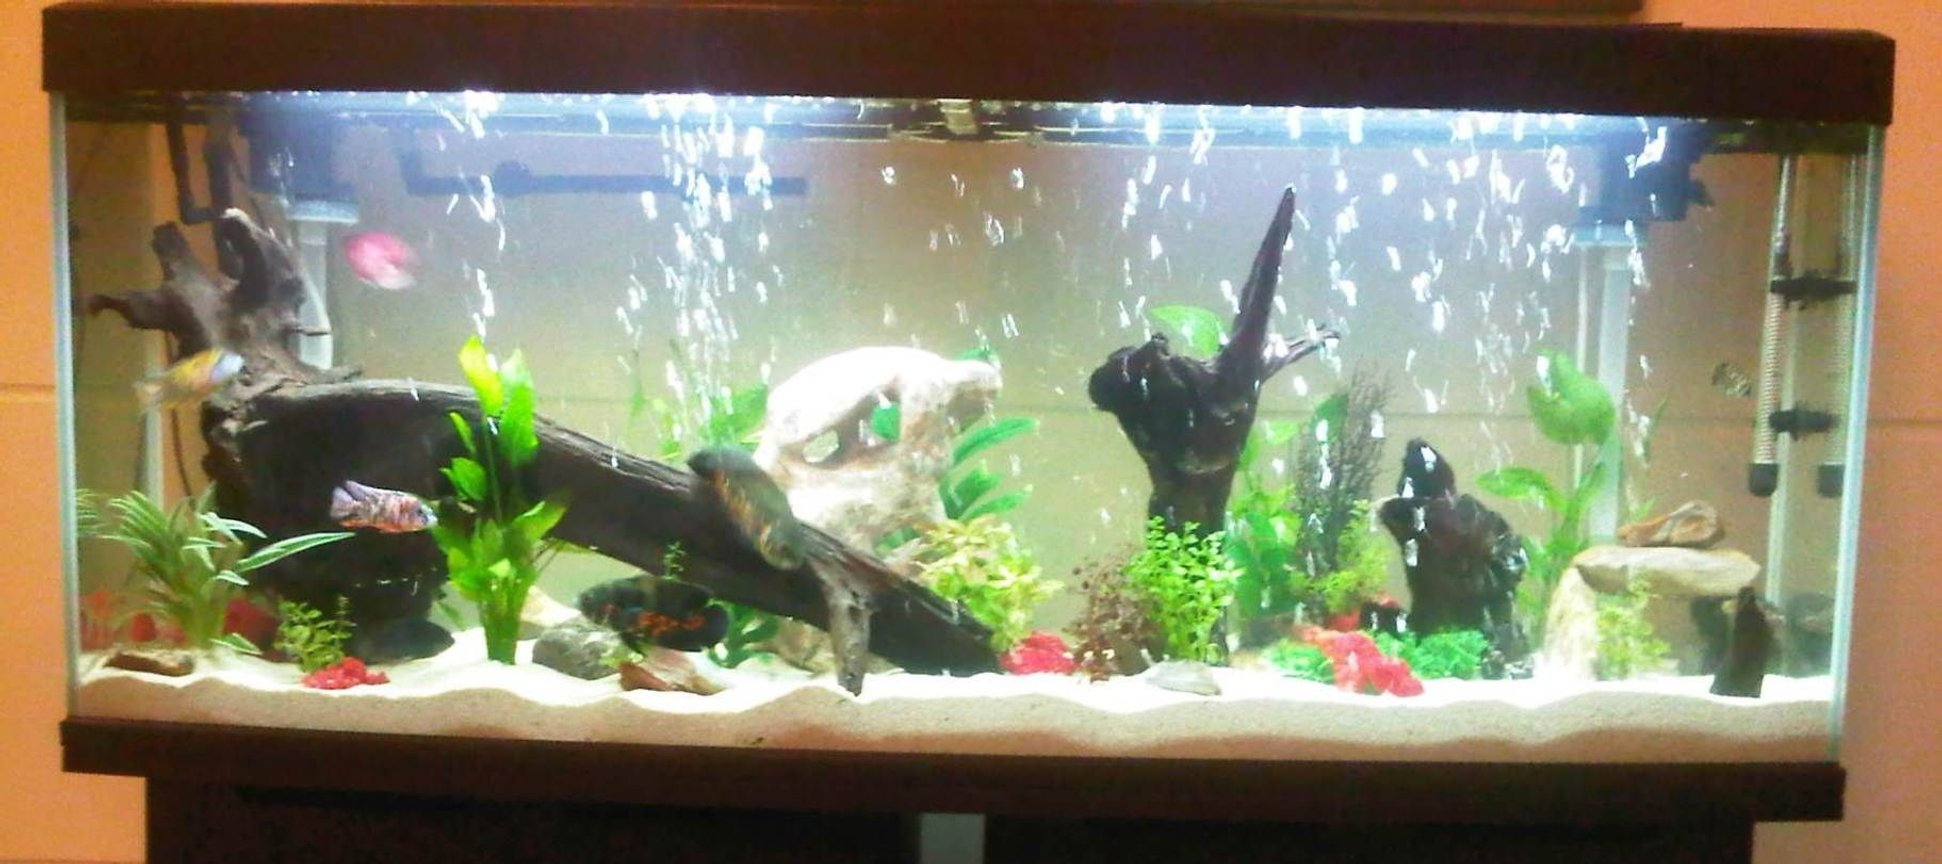 68 gallons freshwater fish tank (mostly fish and non-living decorations) - ----